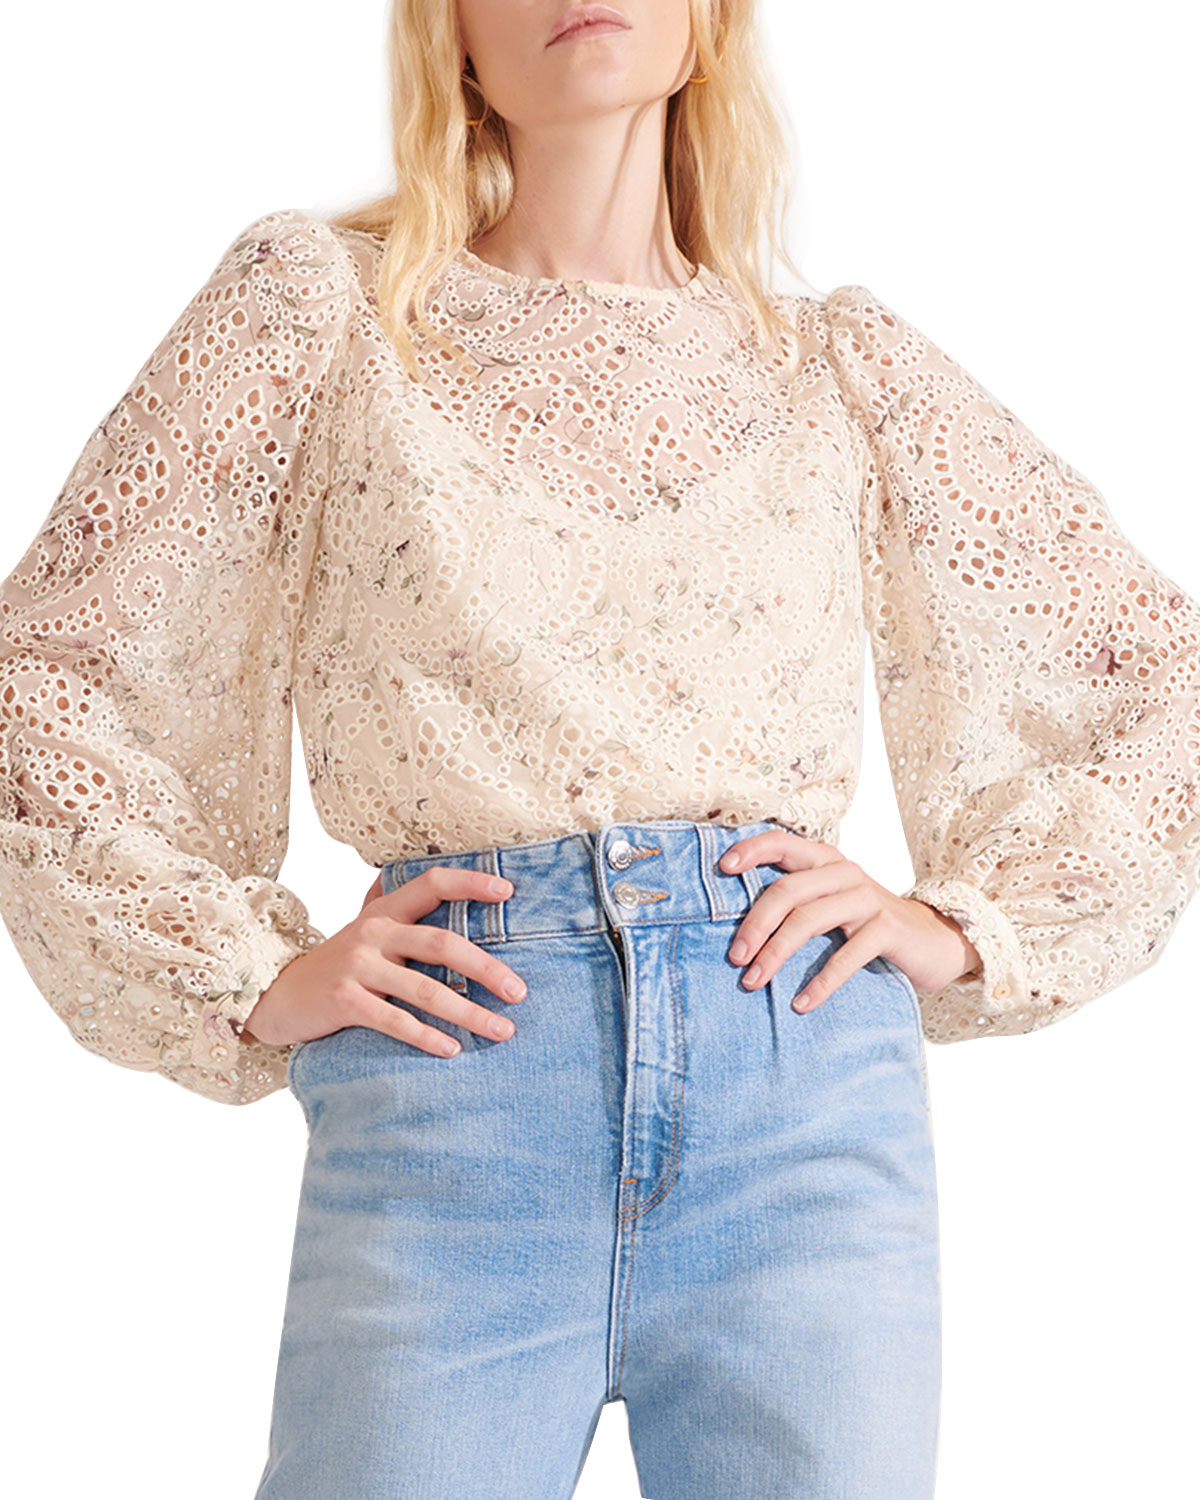 Veronica Beard Azar Floral Eyelet Long-Sleeve Top